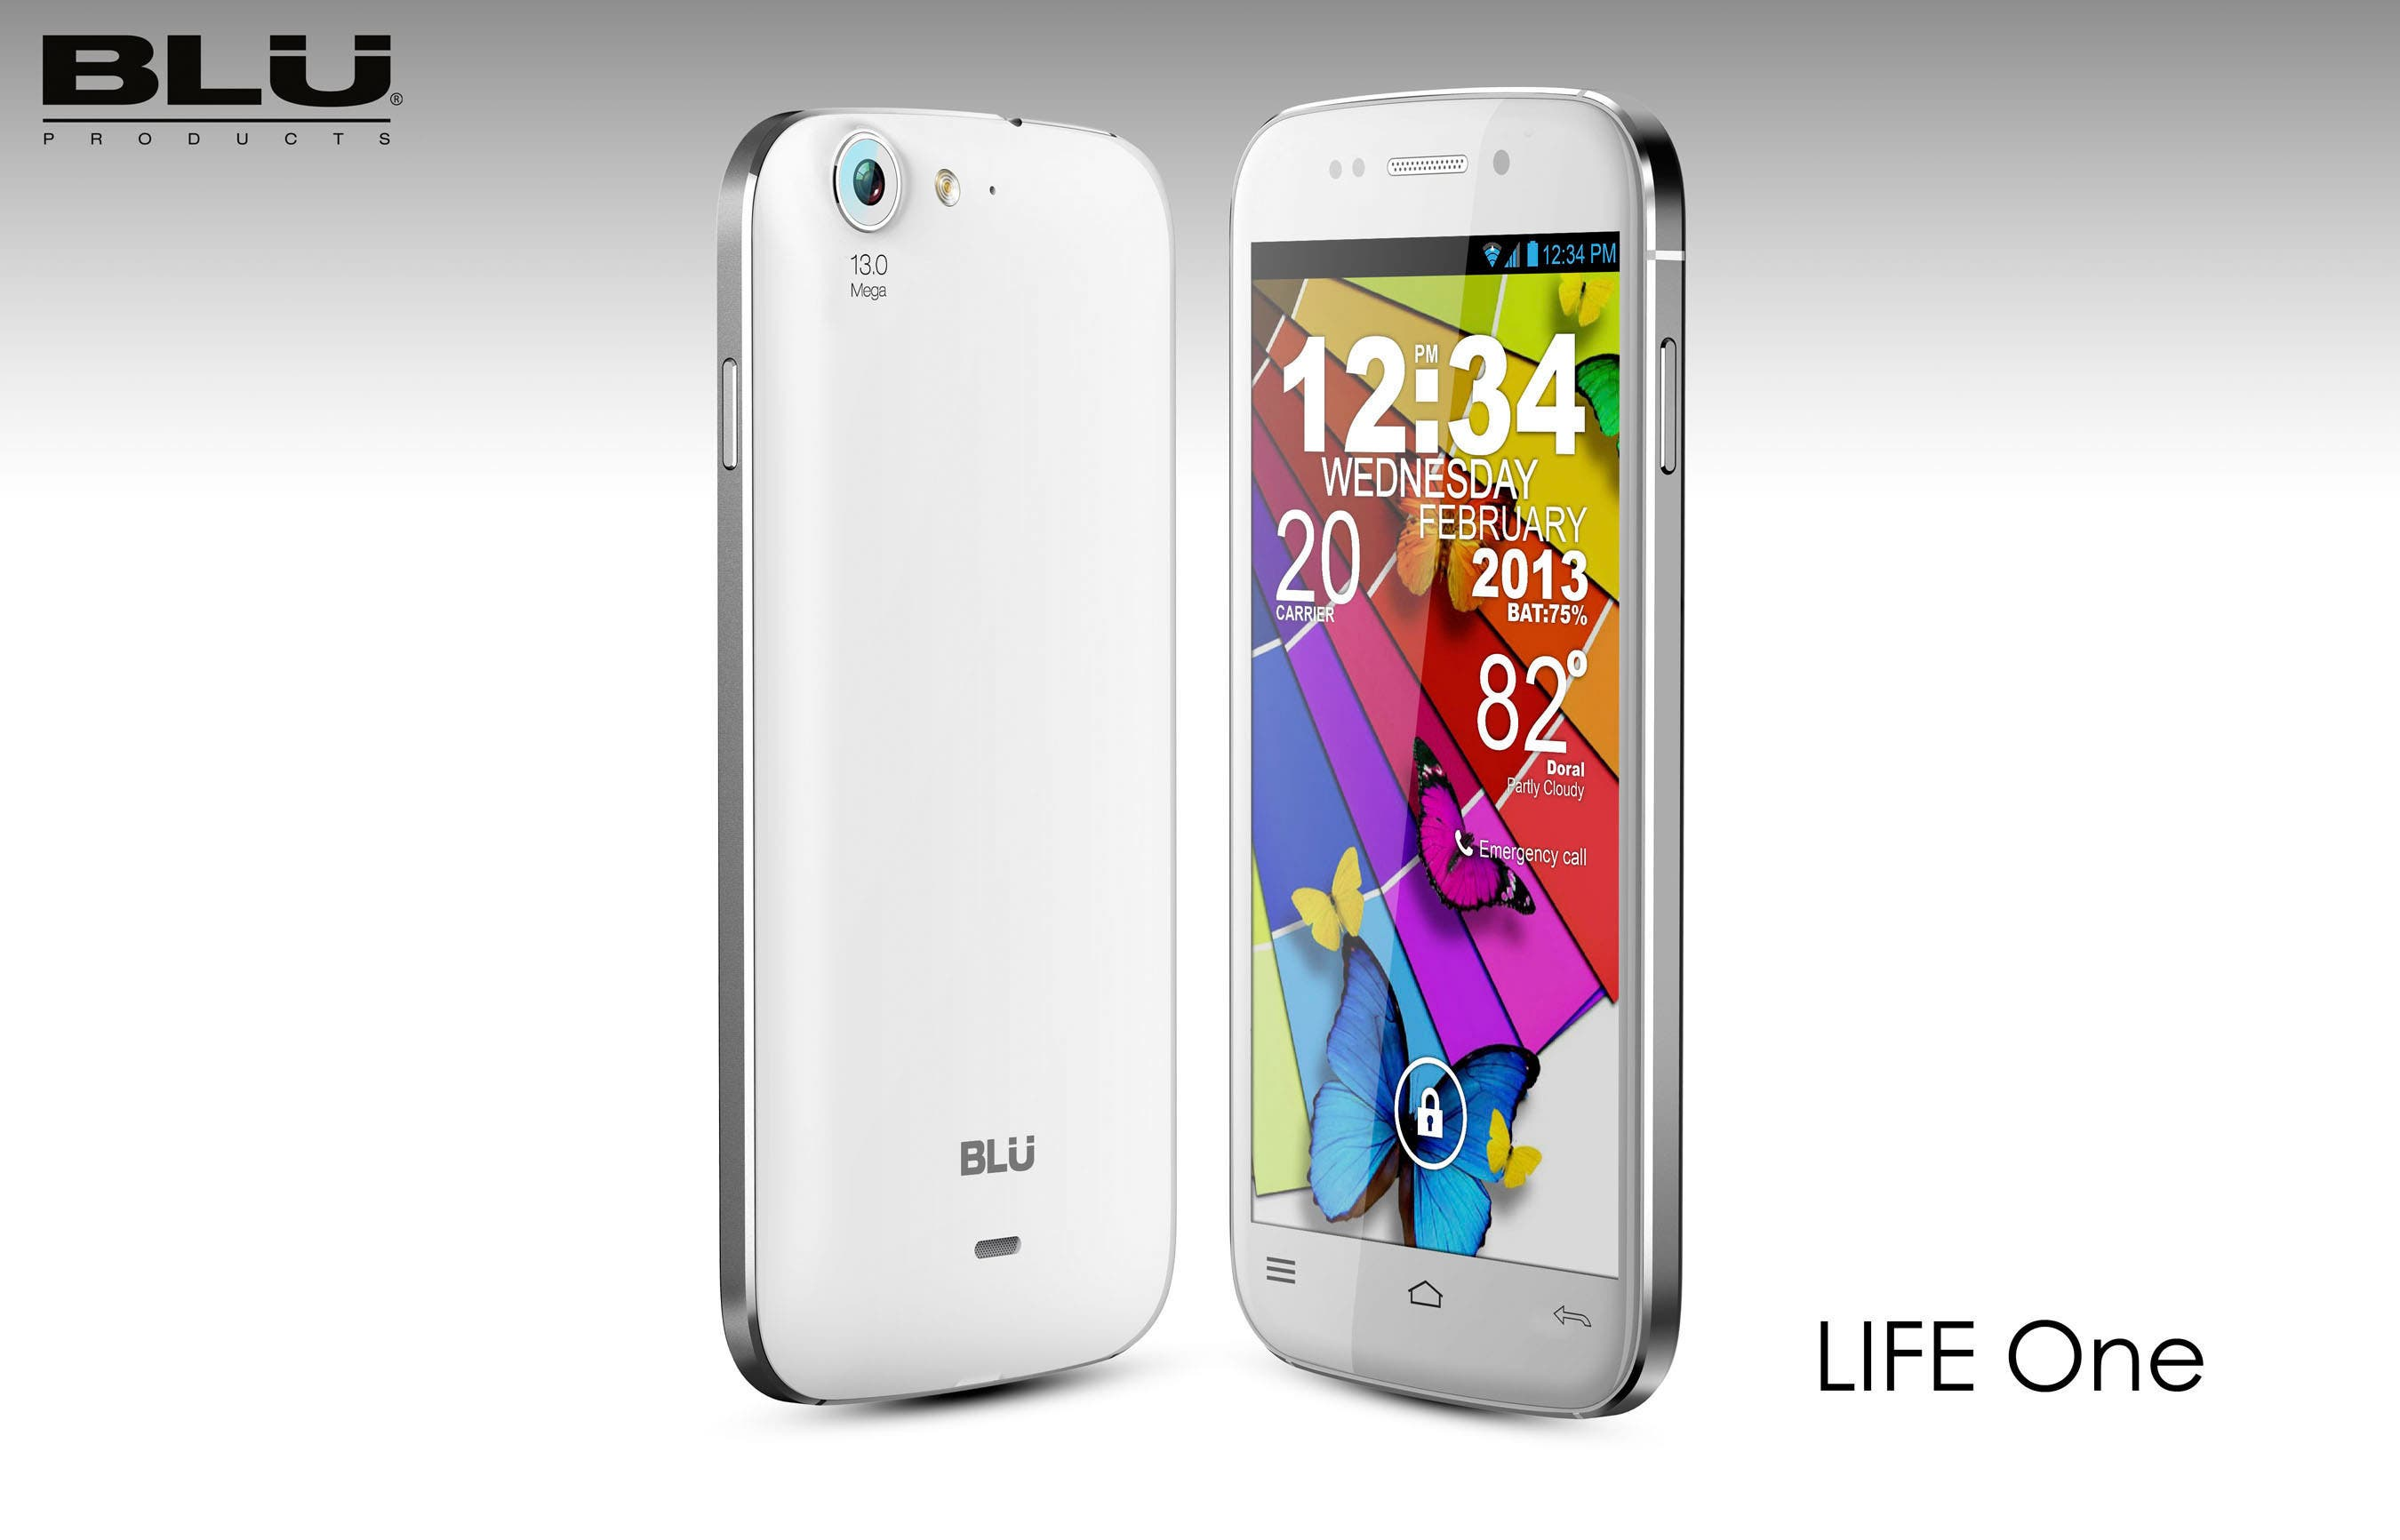 BLU PRODUCTS ONE